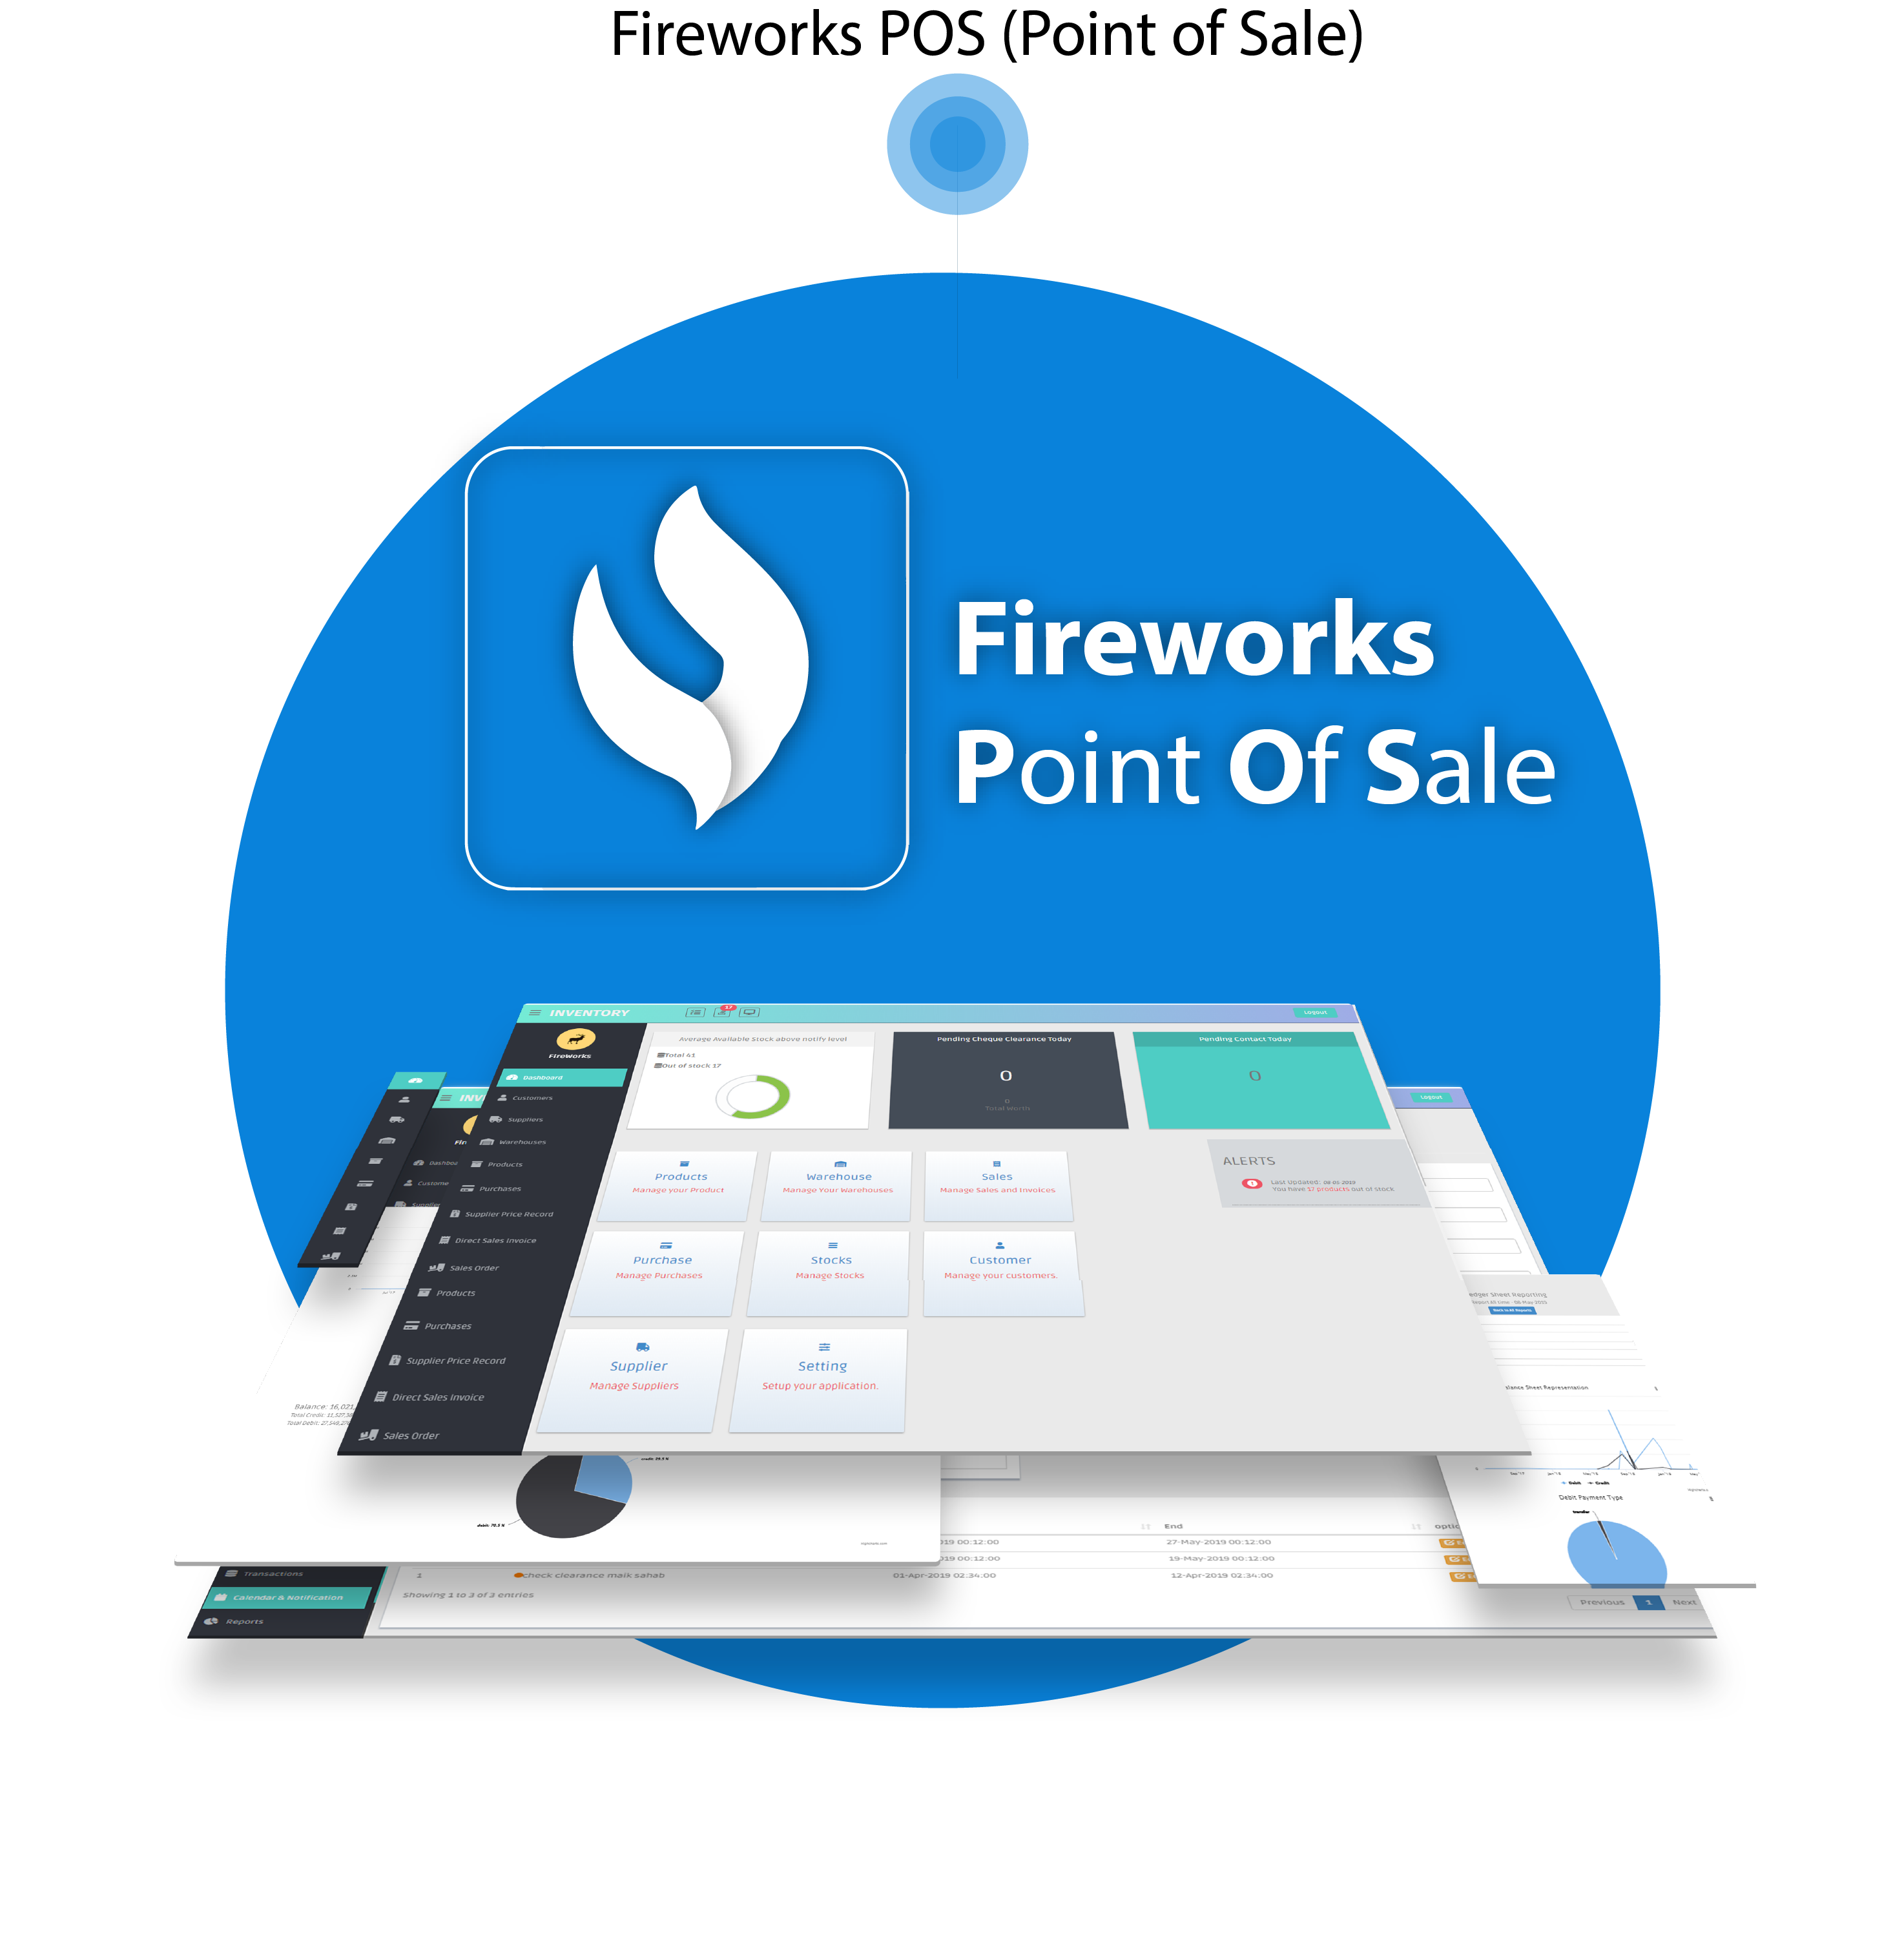 Fireworks Point of Sales